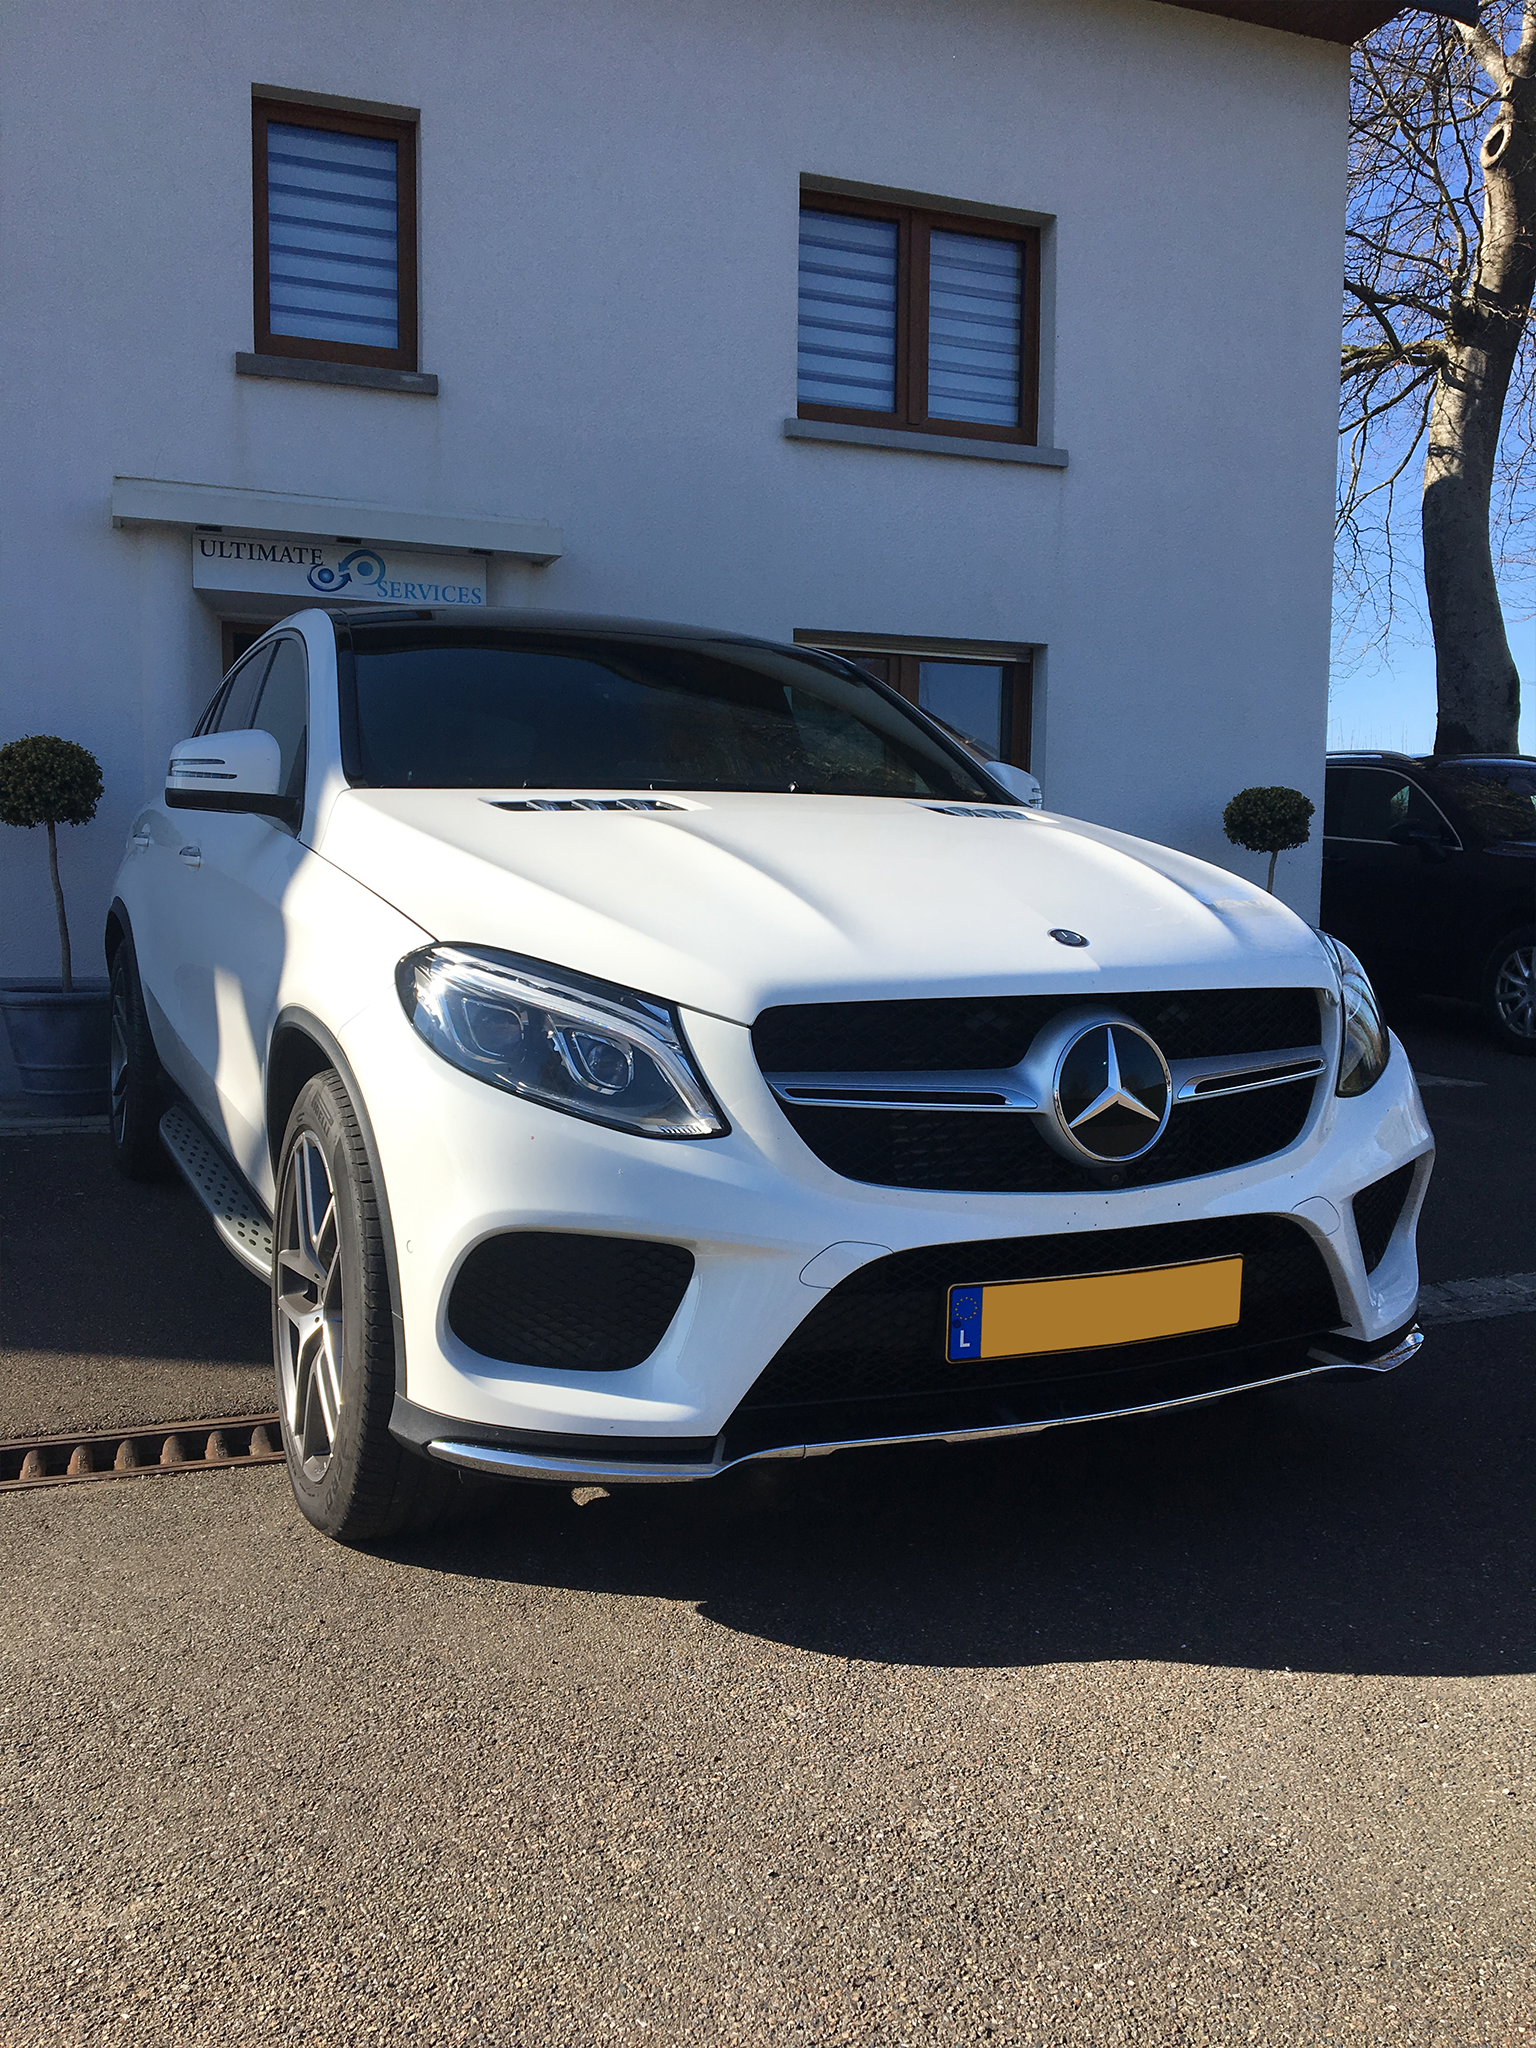 Luxembourg Location Mercedes Ultimate Services